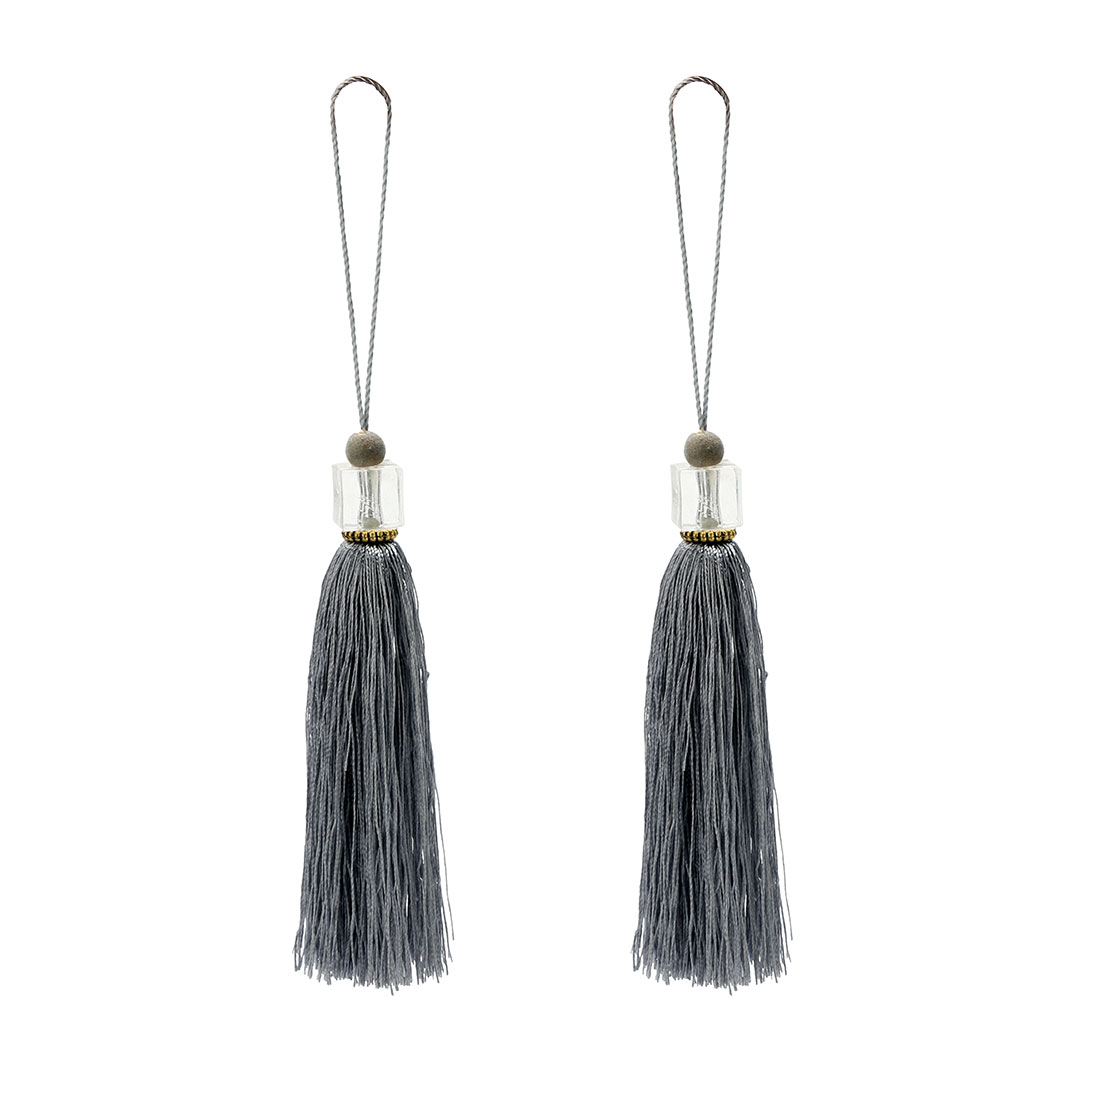 2Pcs Silky Tassels Pendant Sewing DIY Craft Supply Curtain Drapery Deco Gray